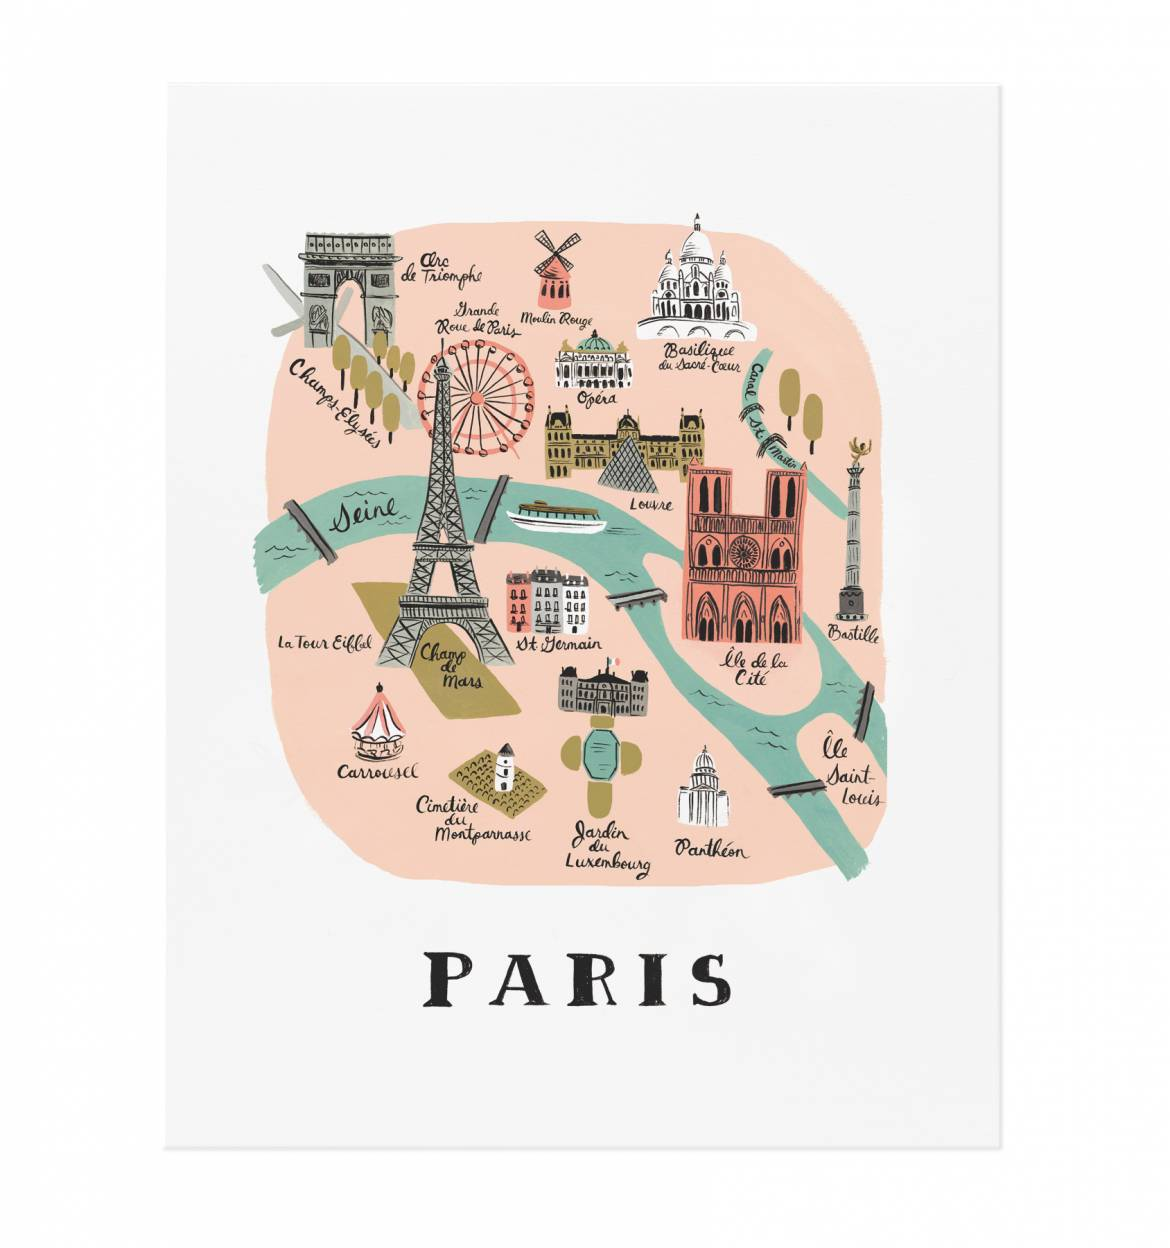 paris-illustrated-art-print-01.jpg